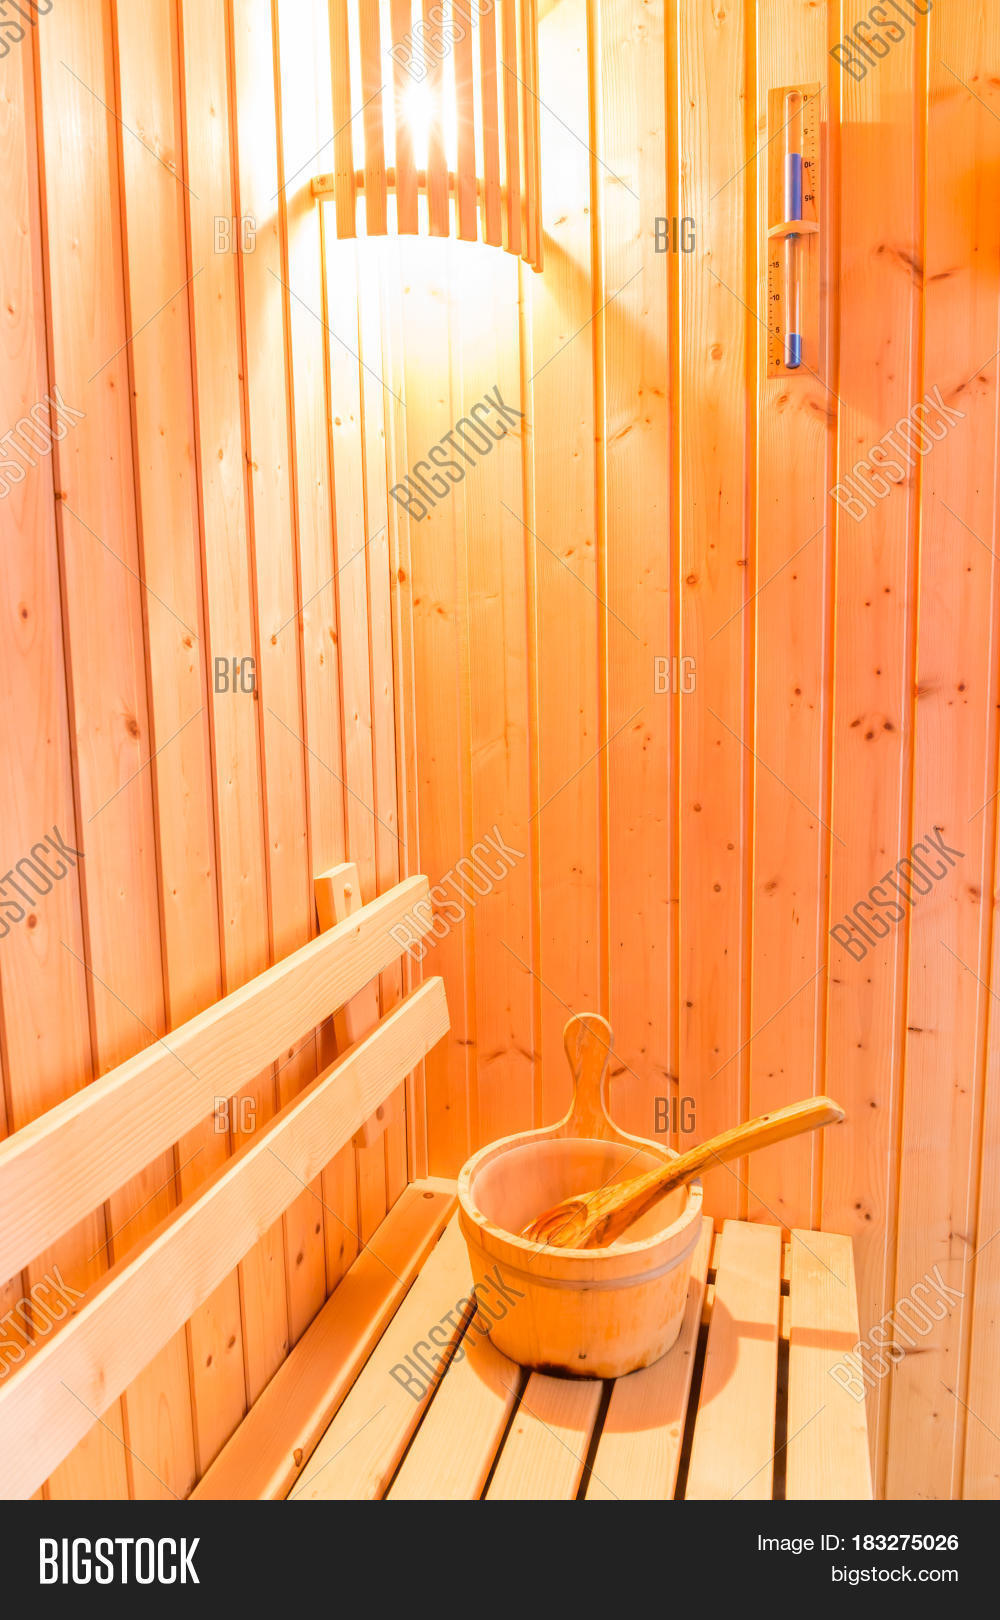 Sauna accessories in sauna room wooden bucket place on bench and sand clock timer on wooden wall.